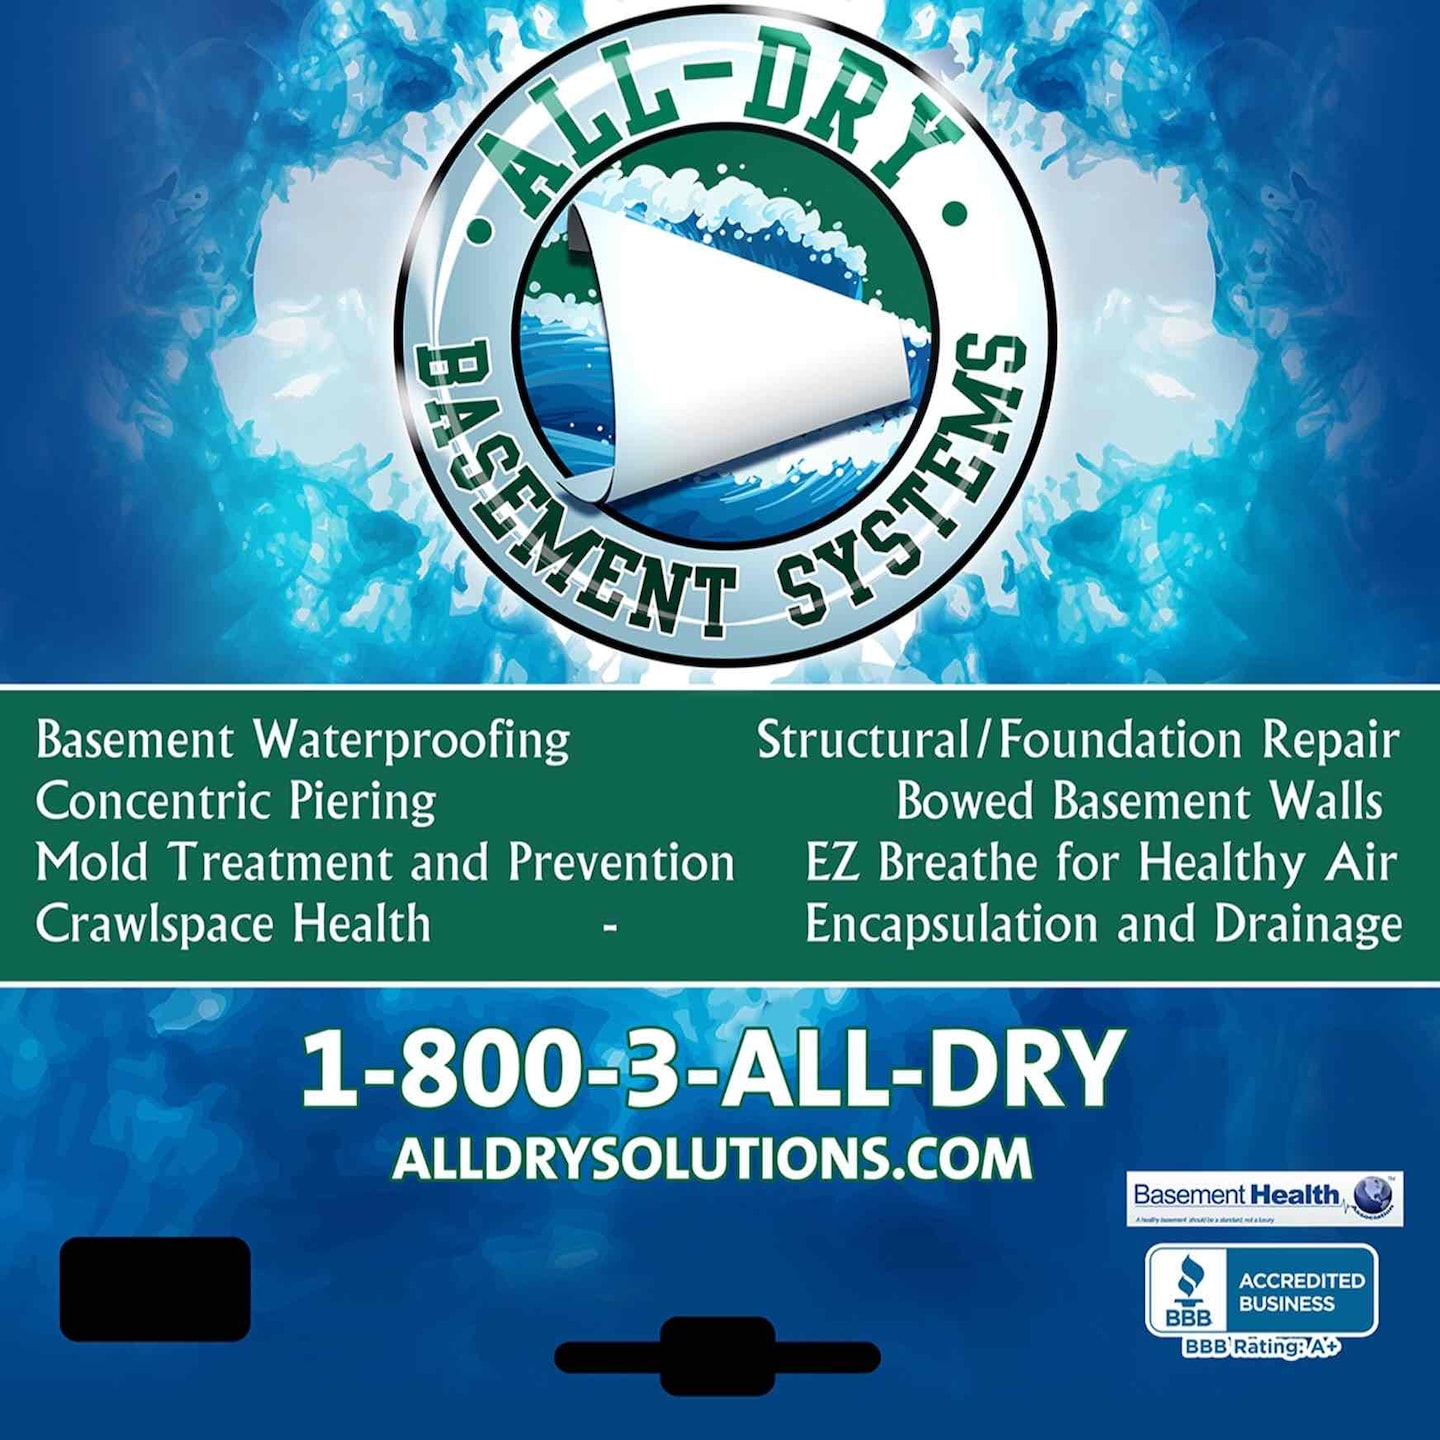 ALL-DRY Basement Waterproofing & Foundation Repair